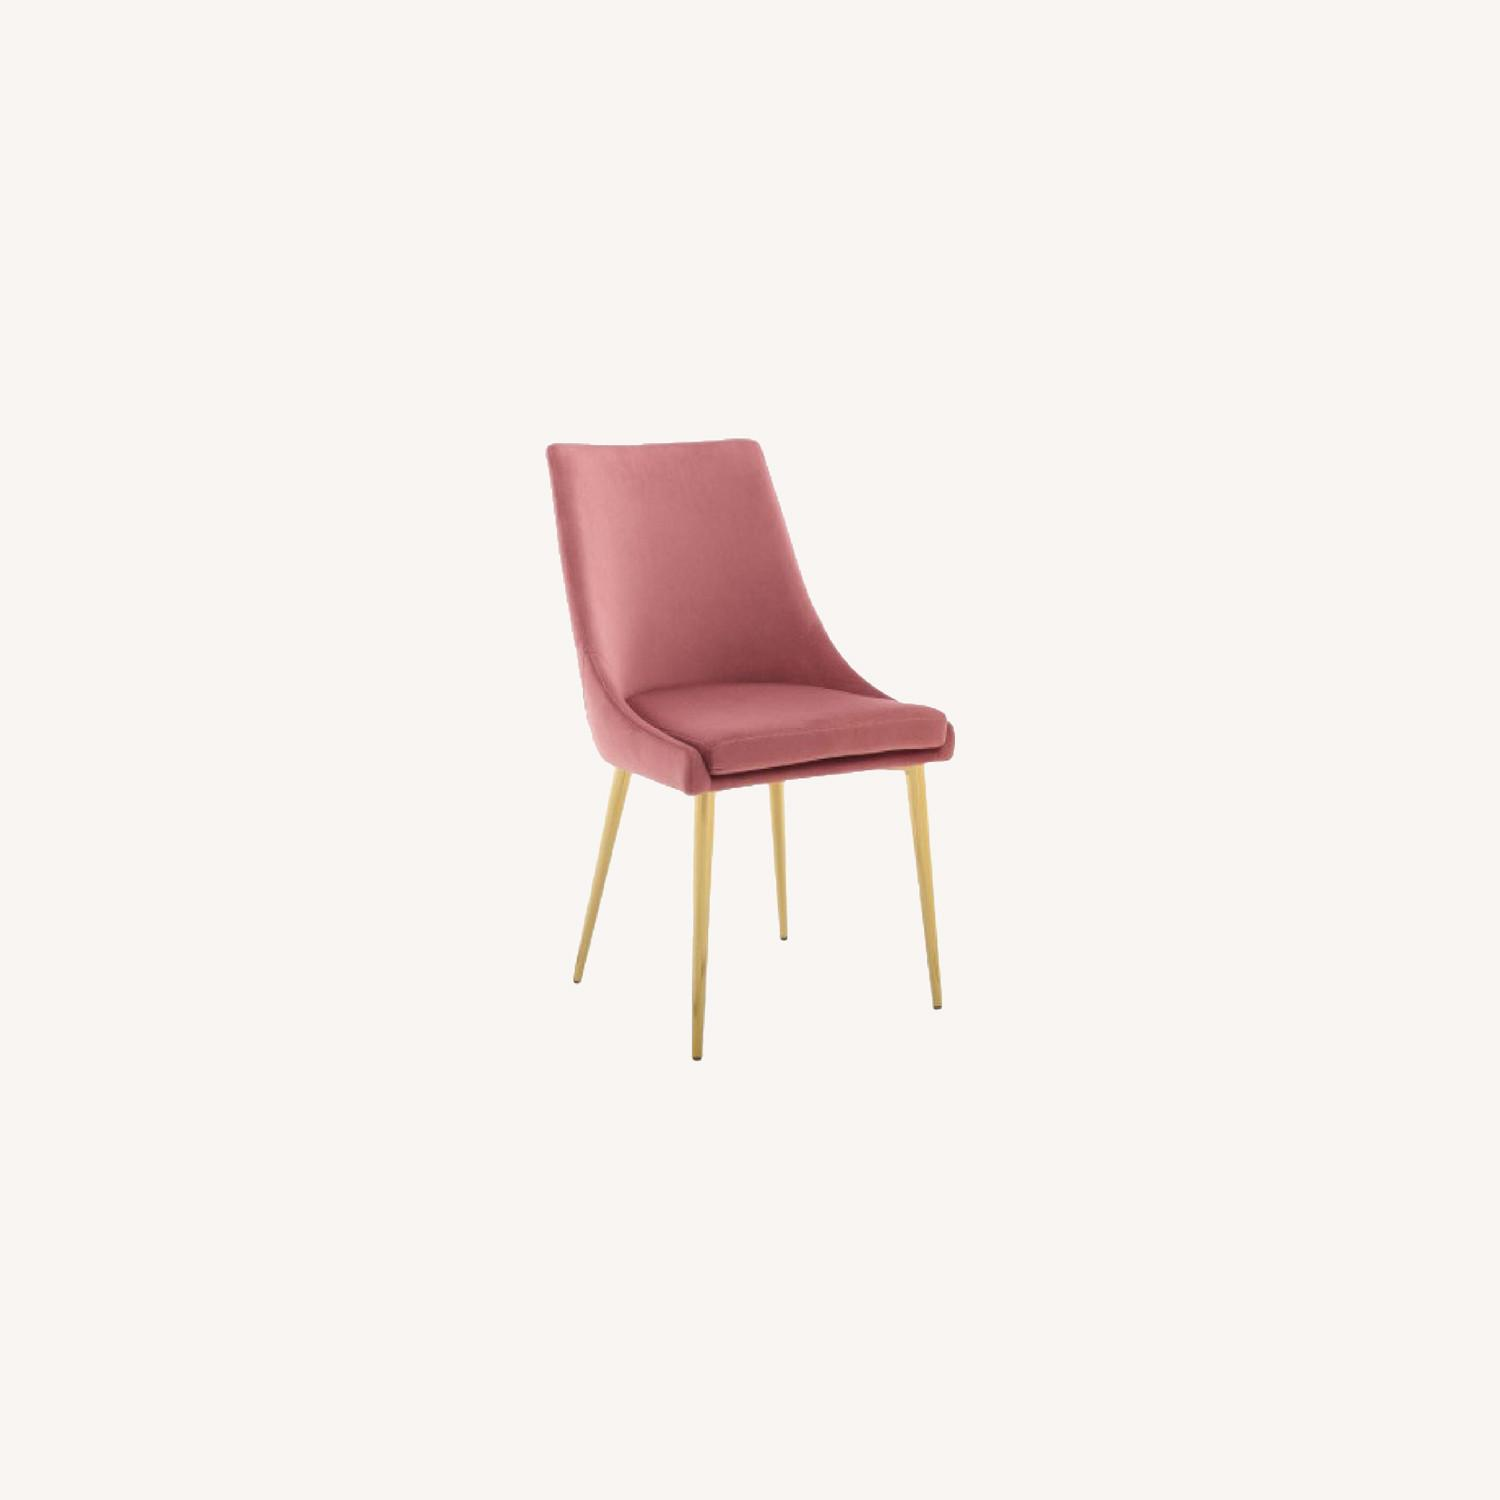 Modway Midcentury Velvet Dining Chairs Dusty Rose - image-0